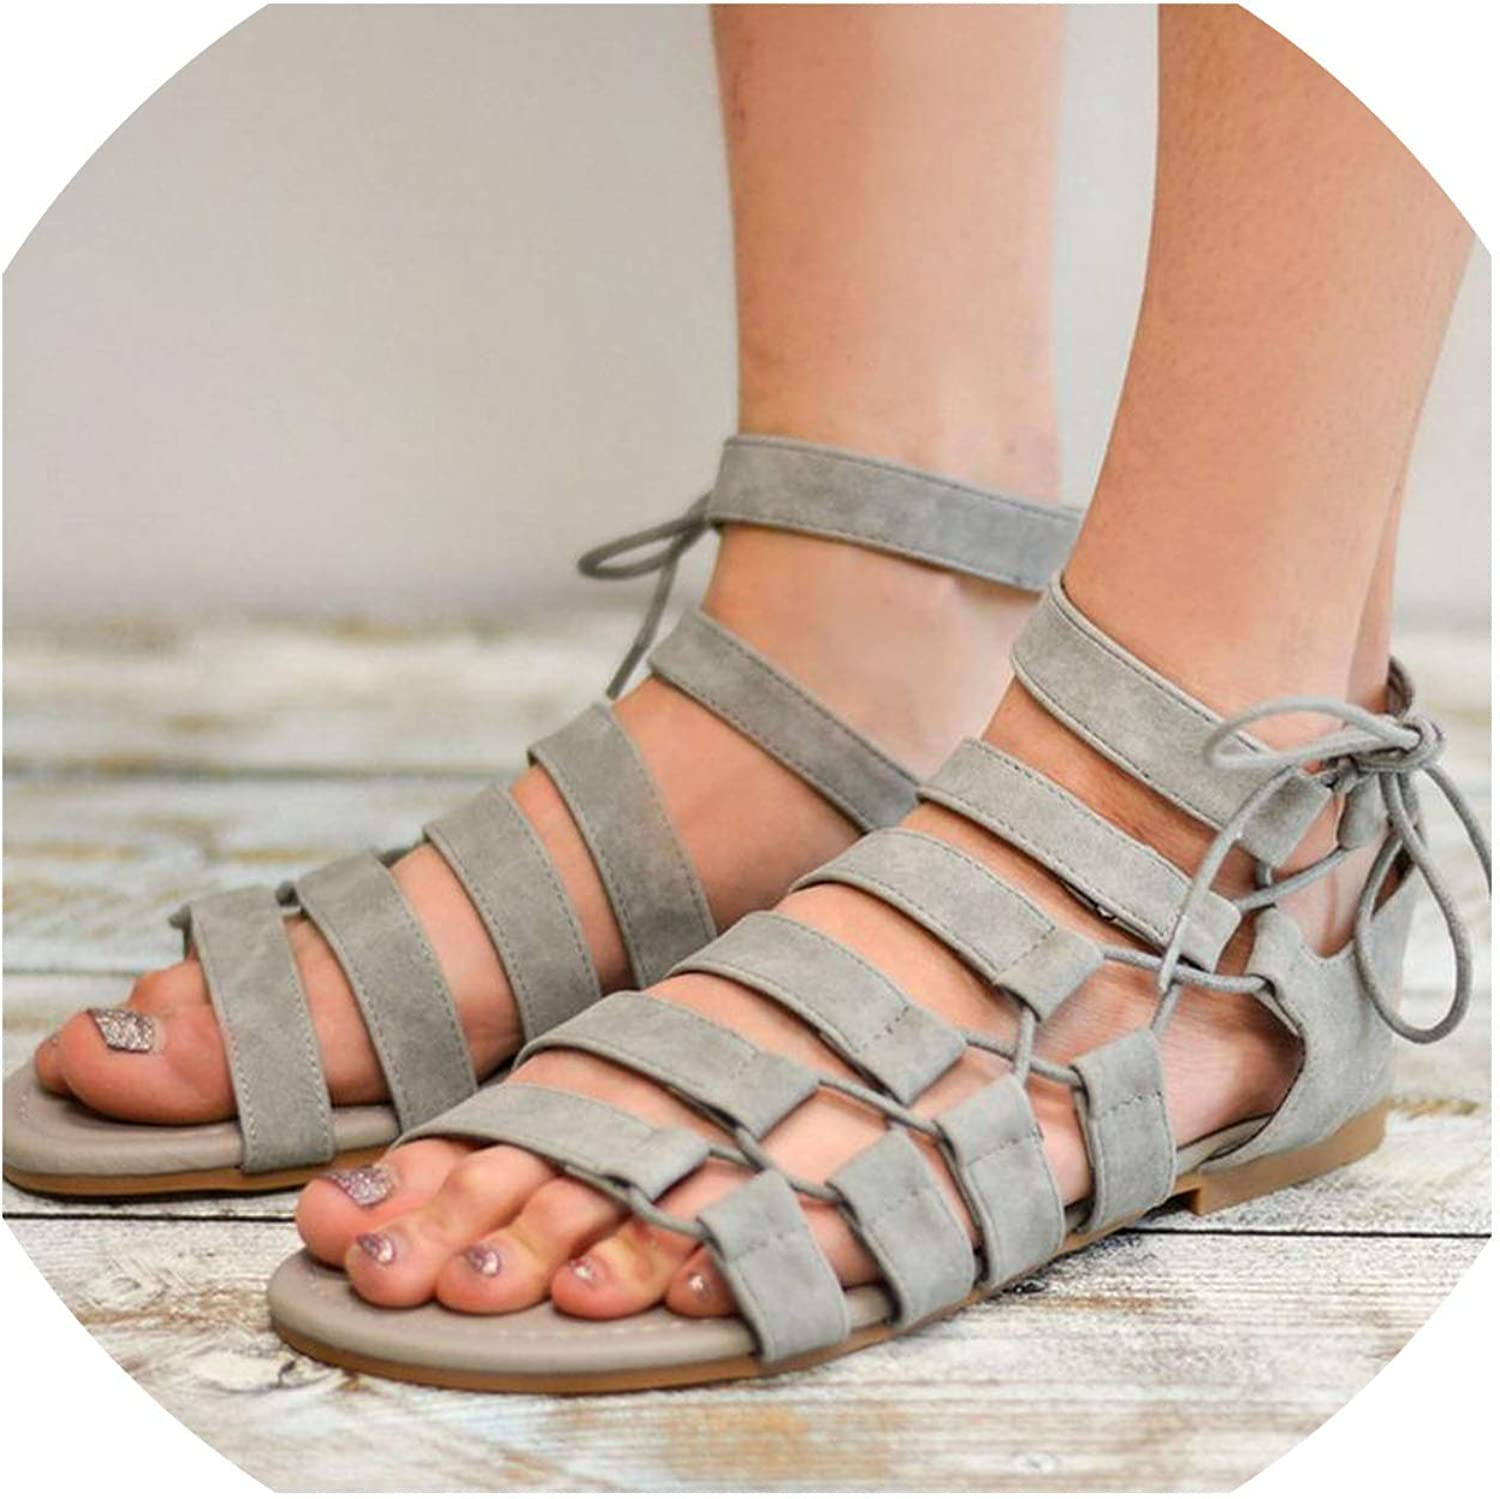 bluee-shore Gladiator Sandals Women Sandals Casual Summer shoes Woman Beach Flat Sandals shoes